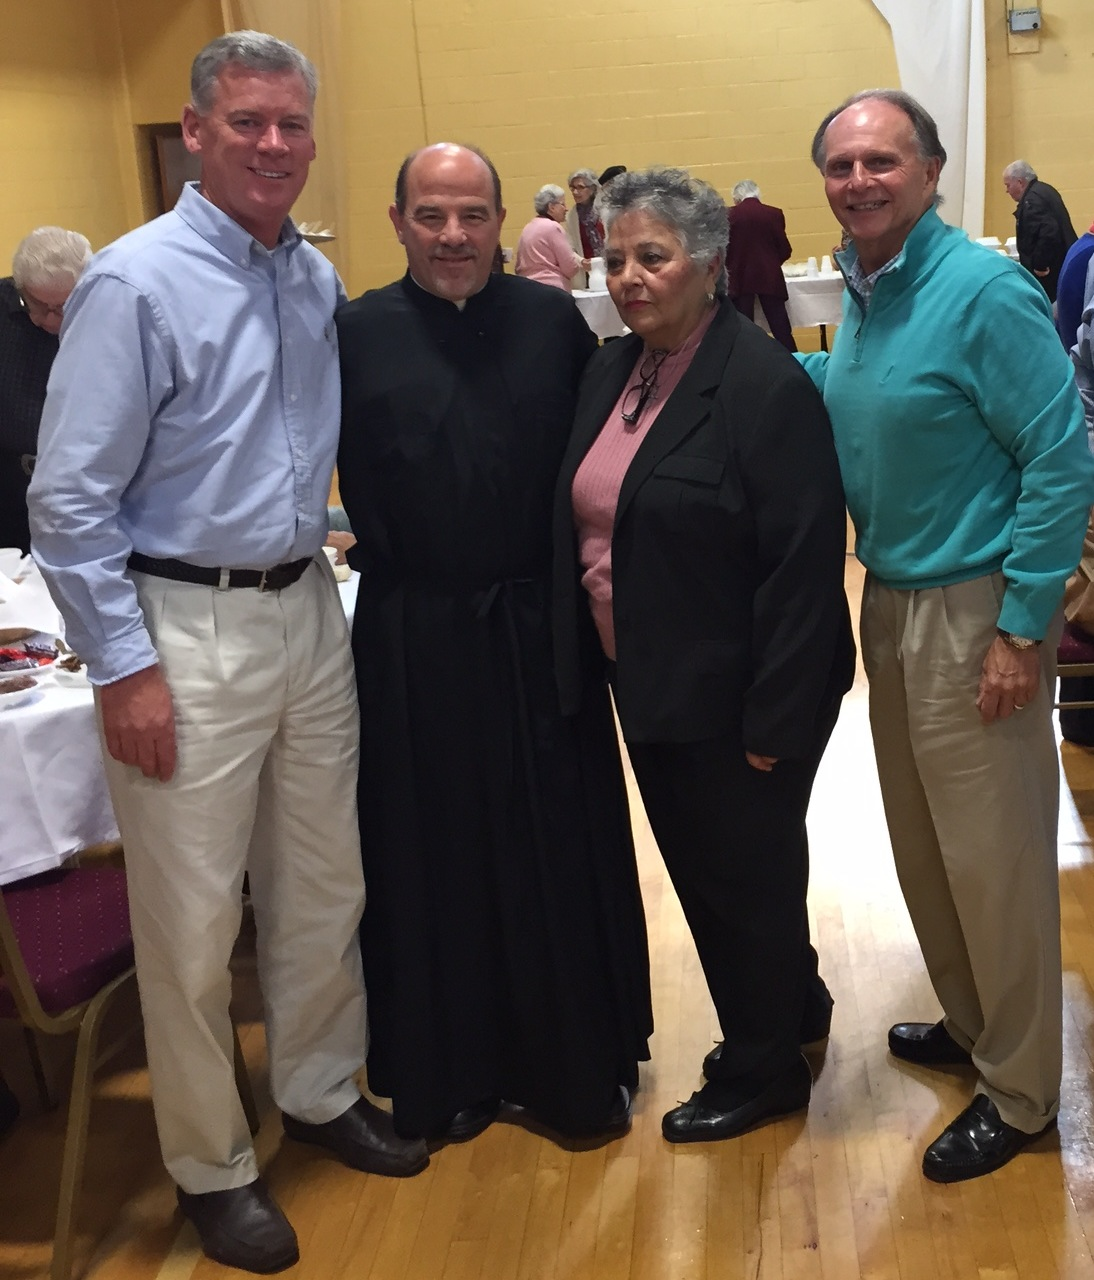 Tom McGarrigle, Rev. Father Chris Kontos, Christina Zografakis, Bill Adolph .  Guests of St Luke's Church for the Senior Luncheon